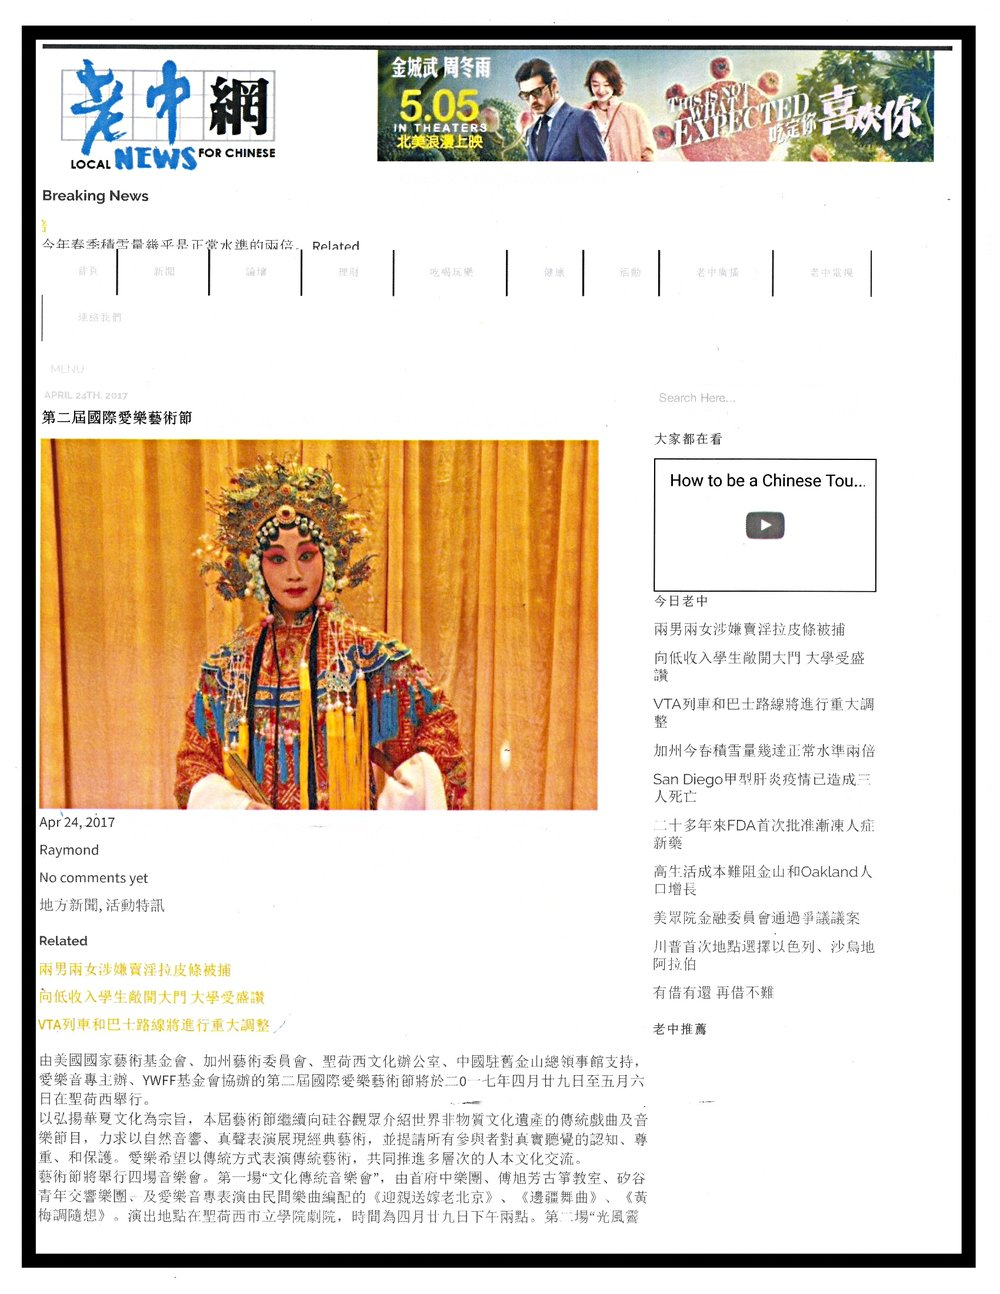 LOCAL NEWS FOR CHINESE.jpg